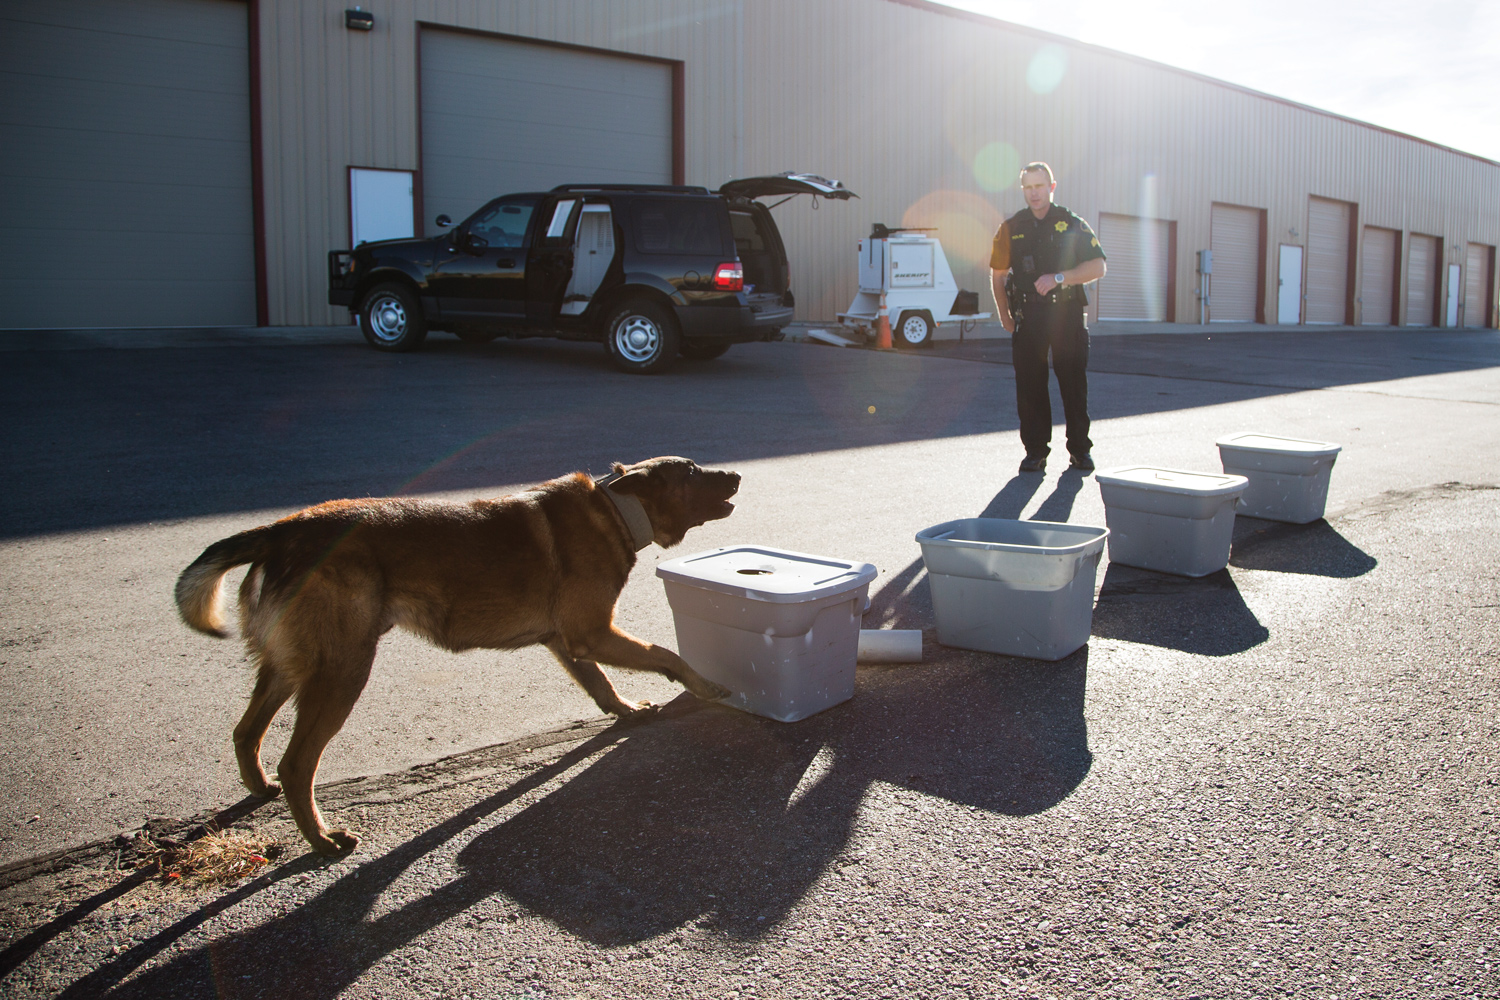 Sgt. Courtland Folks of the Moffat County Sheriff's Office places synthetic narcotics in bins as part of a training for his dog, Kilo. (Brooke Warren/High Country News)